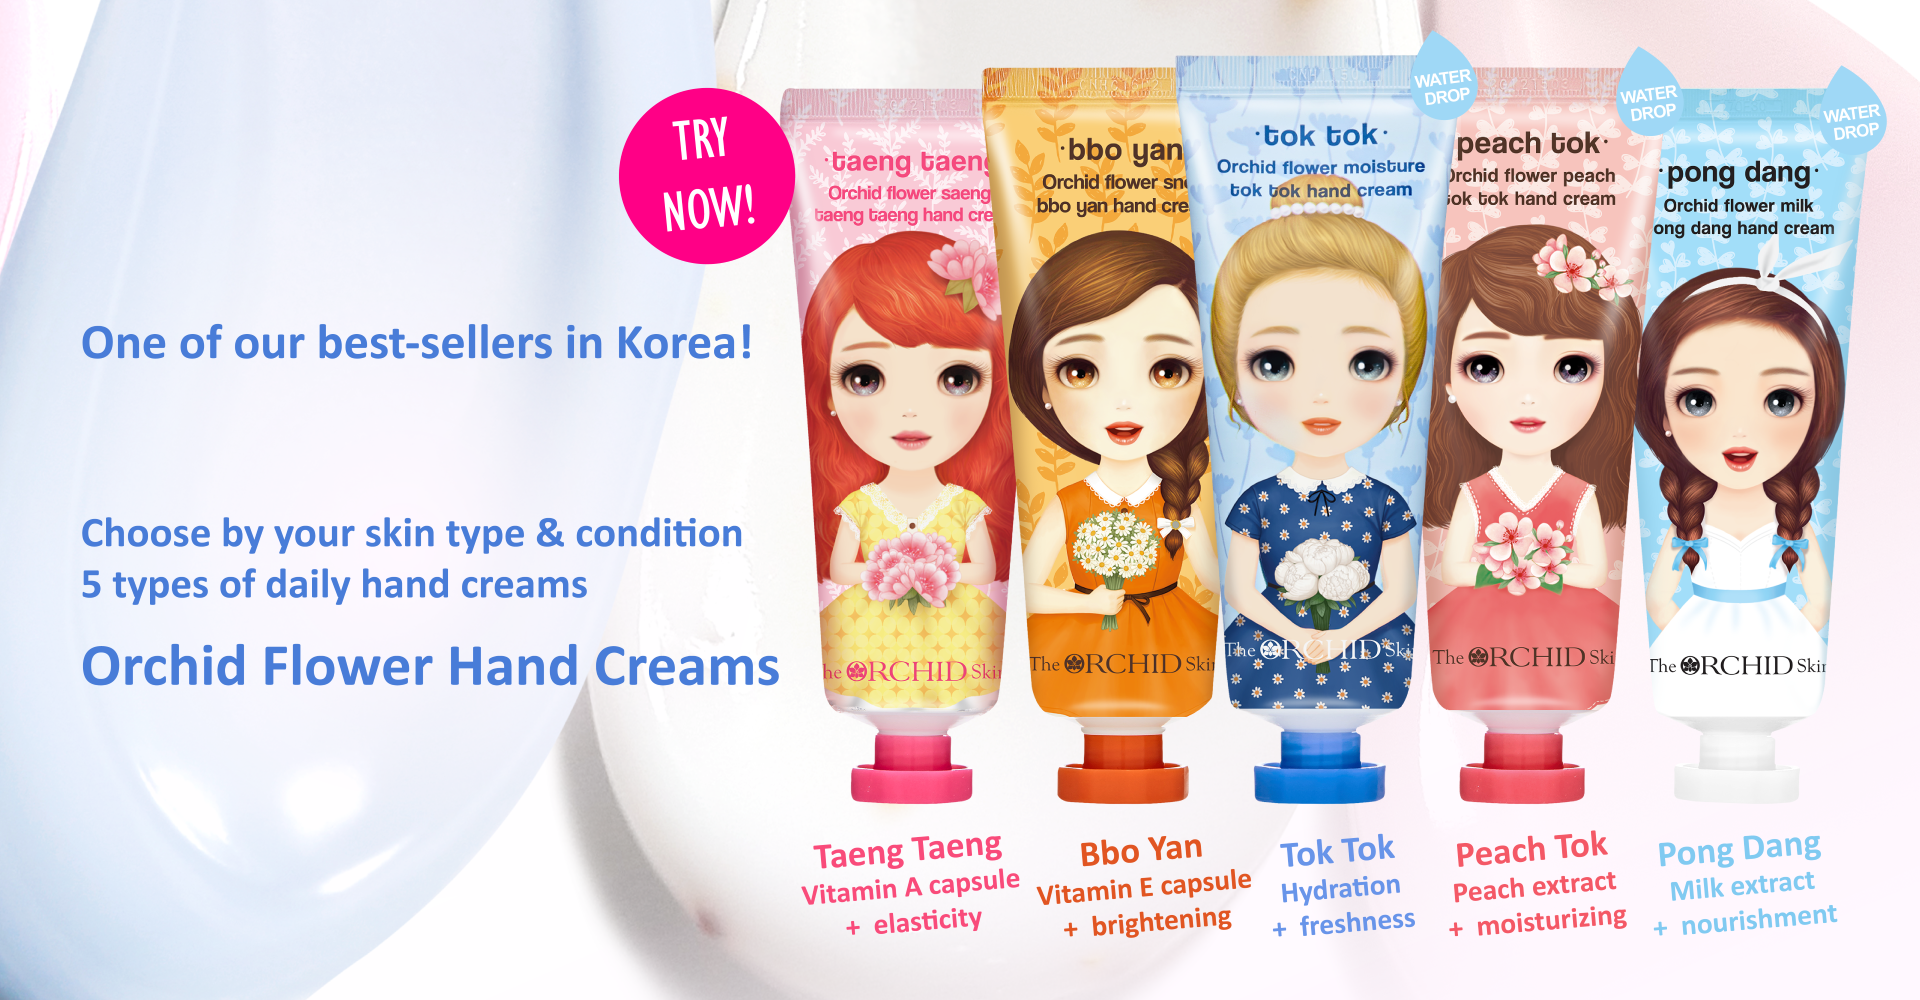 Orchid Flower Hand Creams